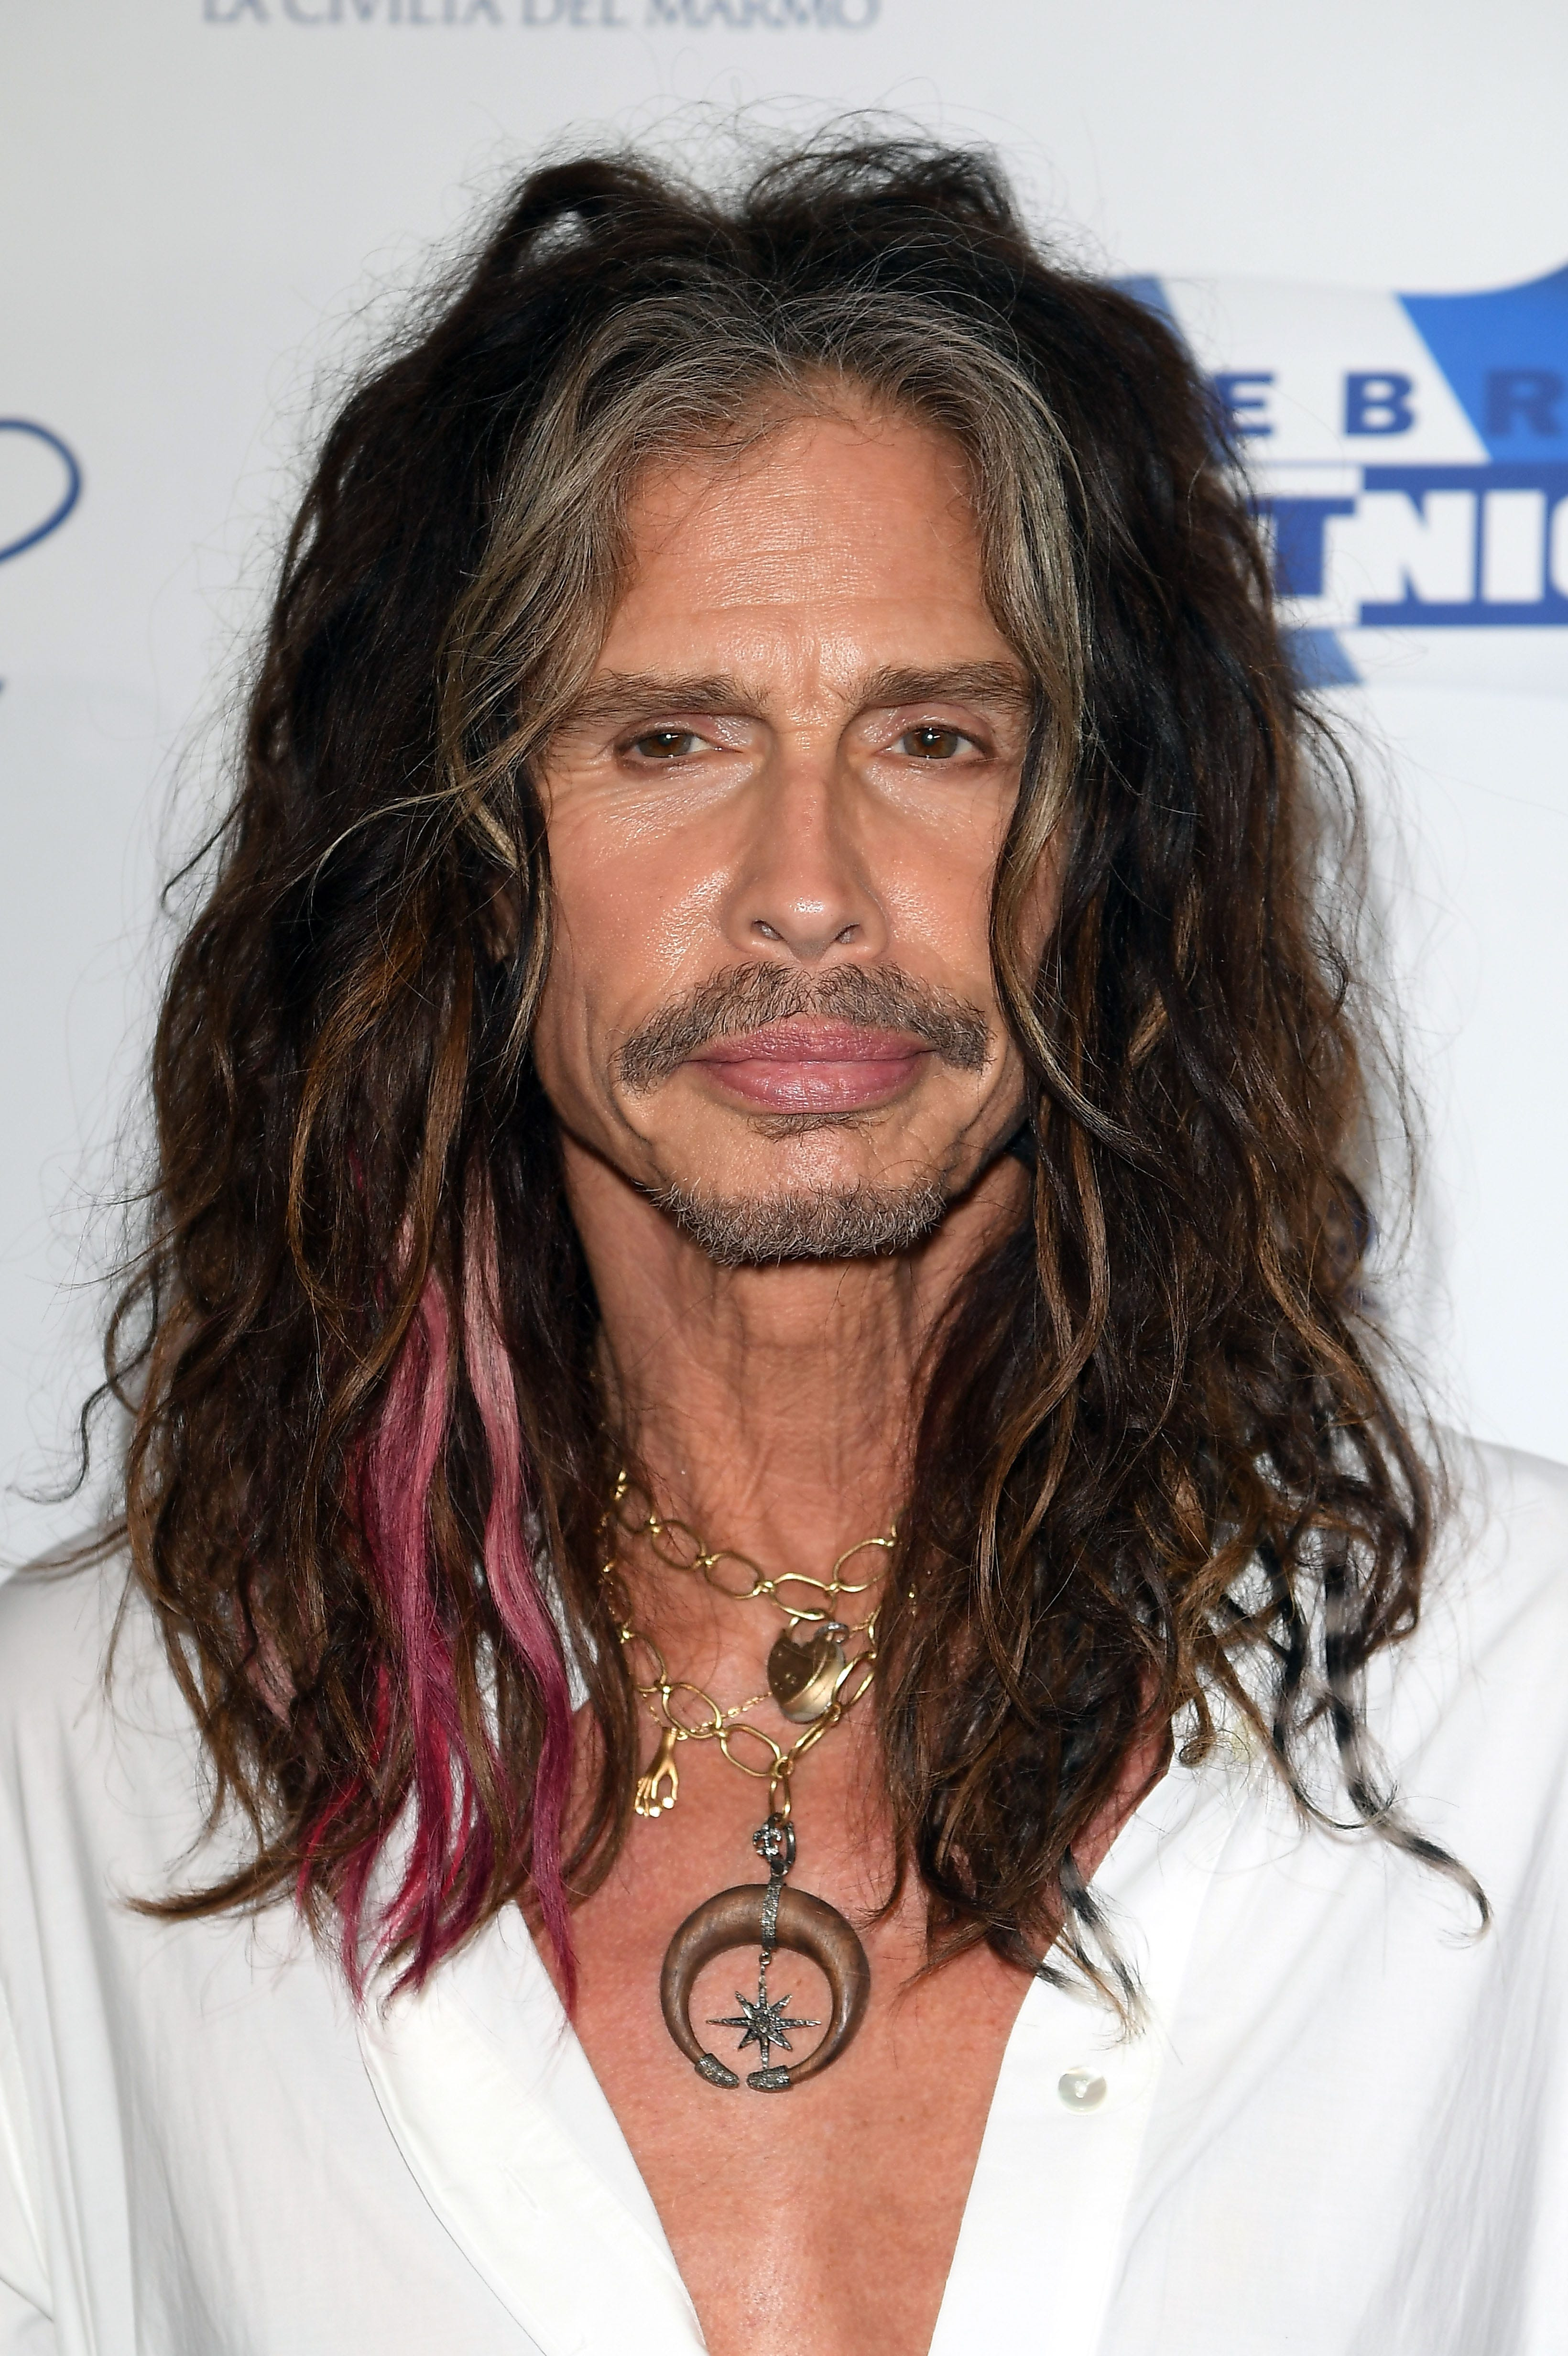 Aerosmith tour crocked after steven tyler surgery new pictures